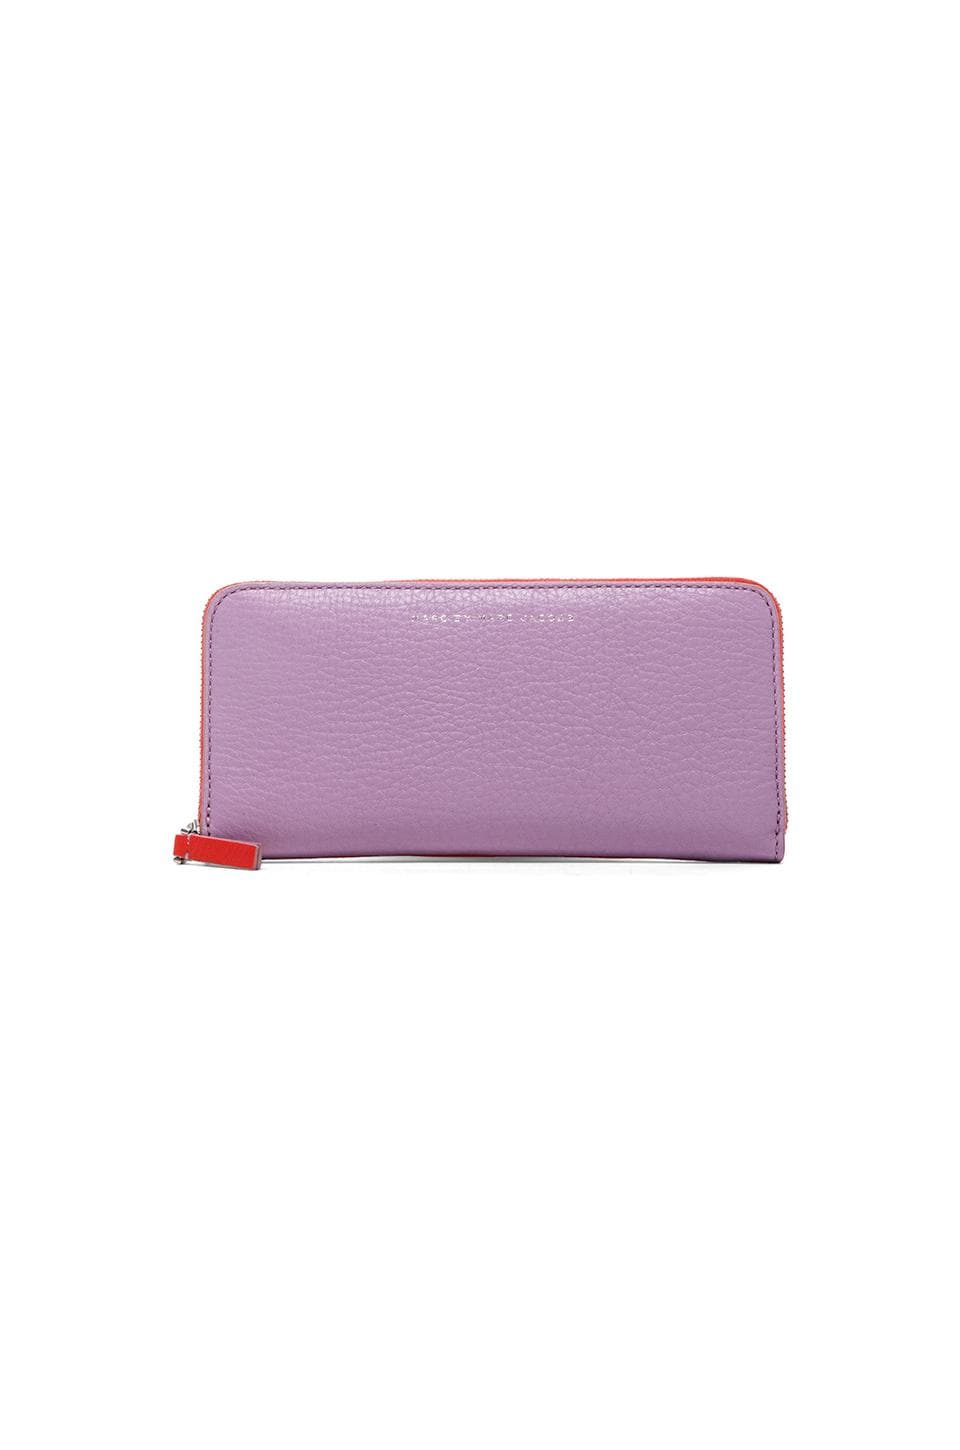 Marc by Marc Jacobs Sophisticato Slim Zip Around Wallet in Pastel Purple Multi